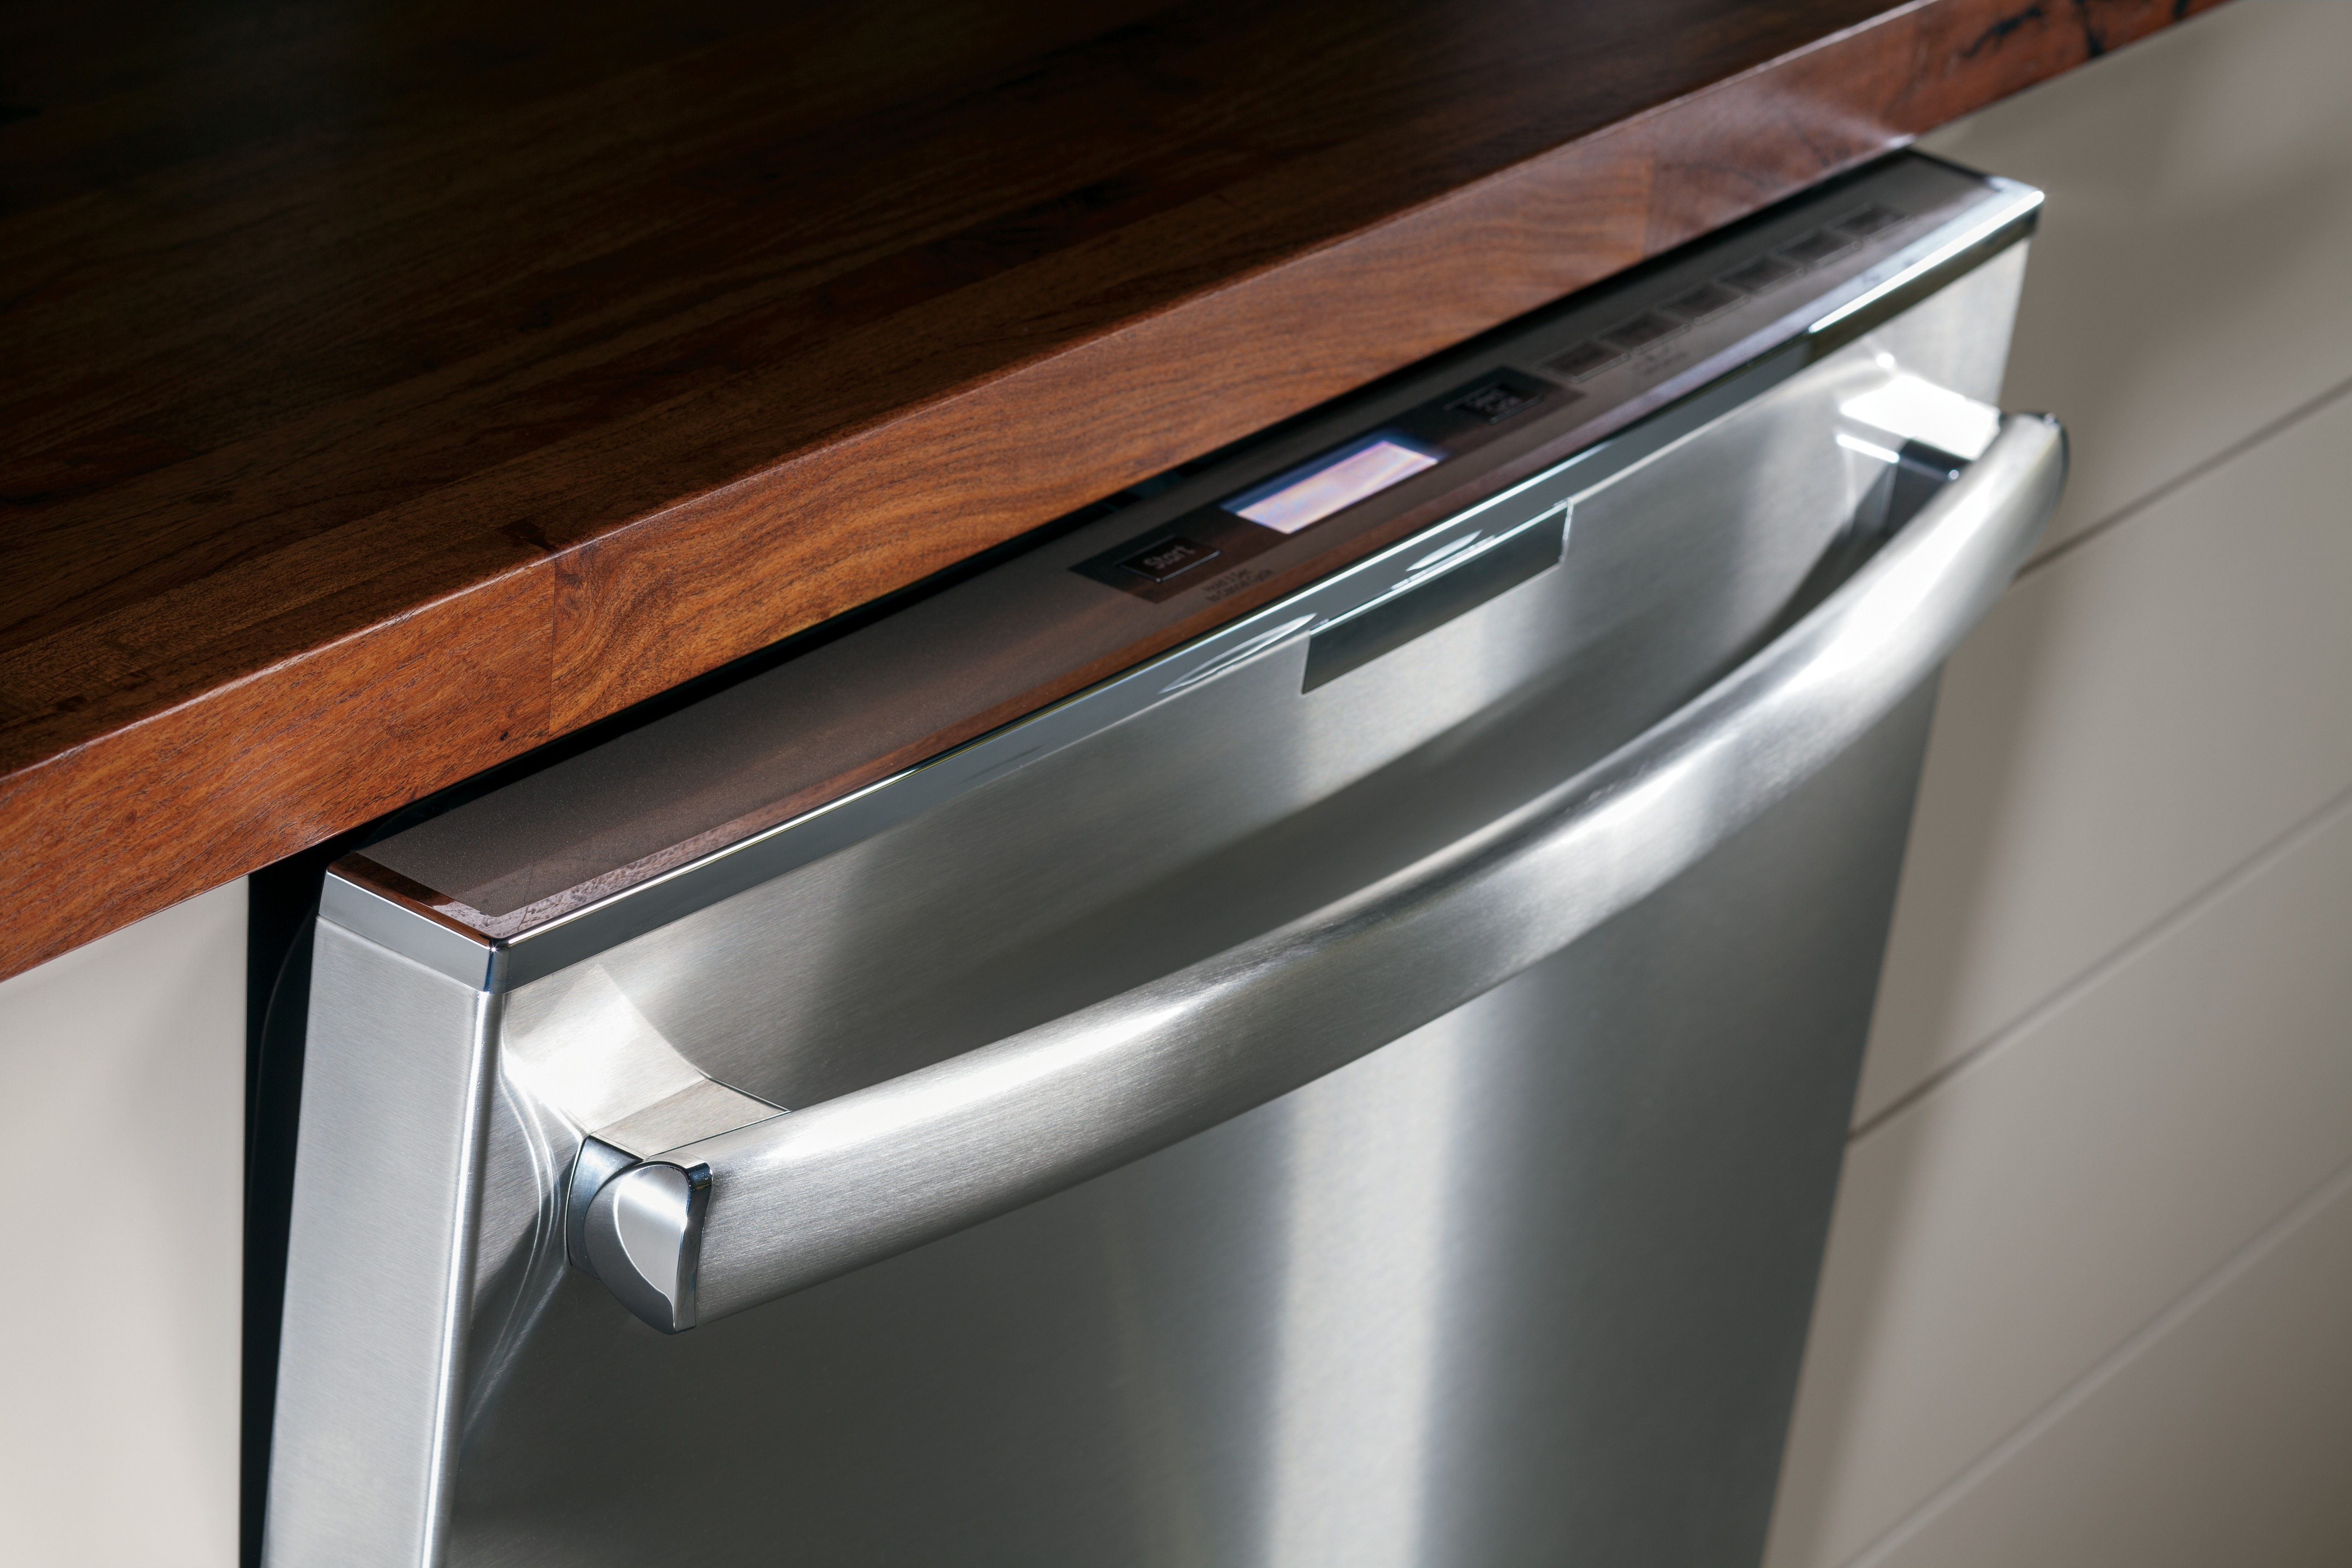 GE ... & Let Me Count The Waves: New GE Dishwasher Has 102 Cleaning Jets to ...